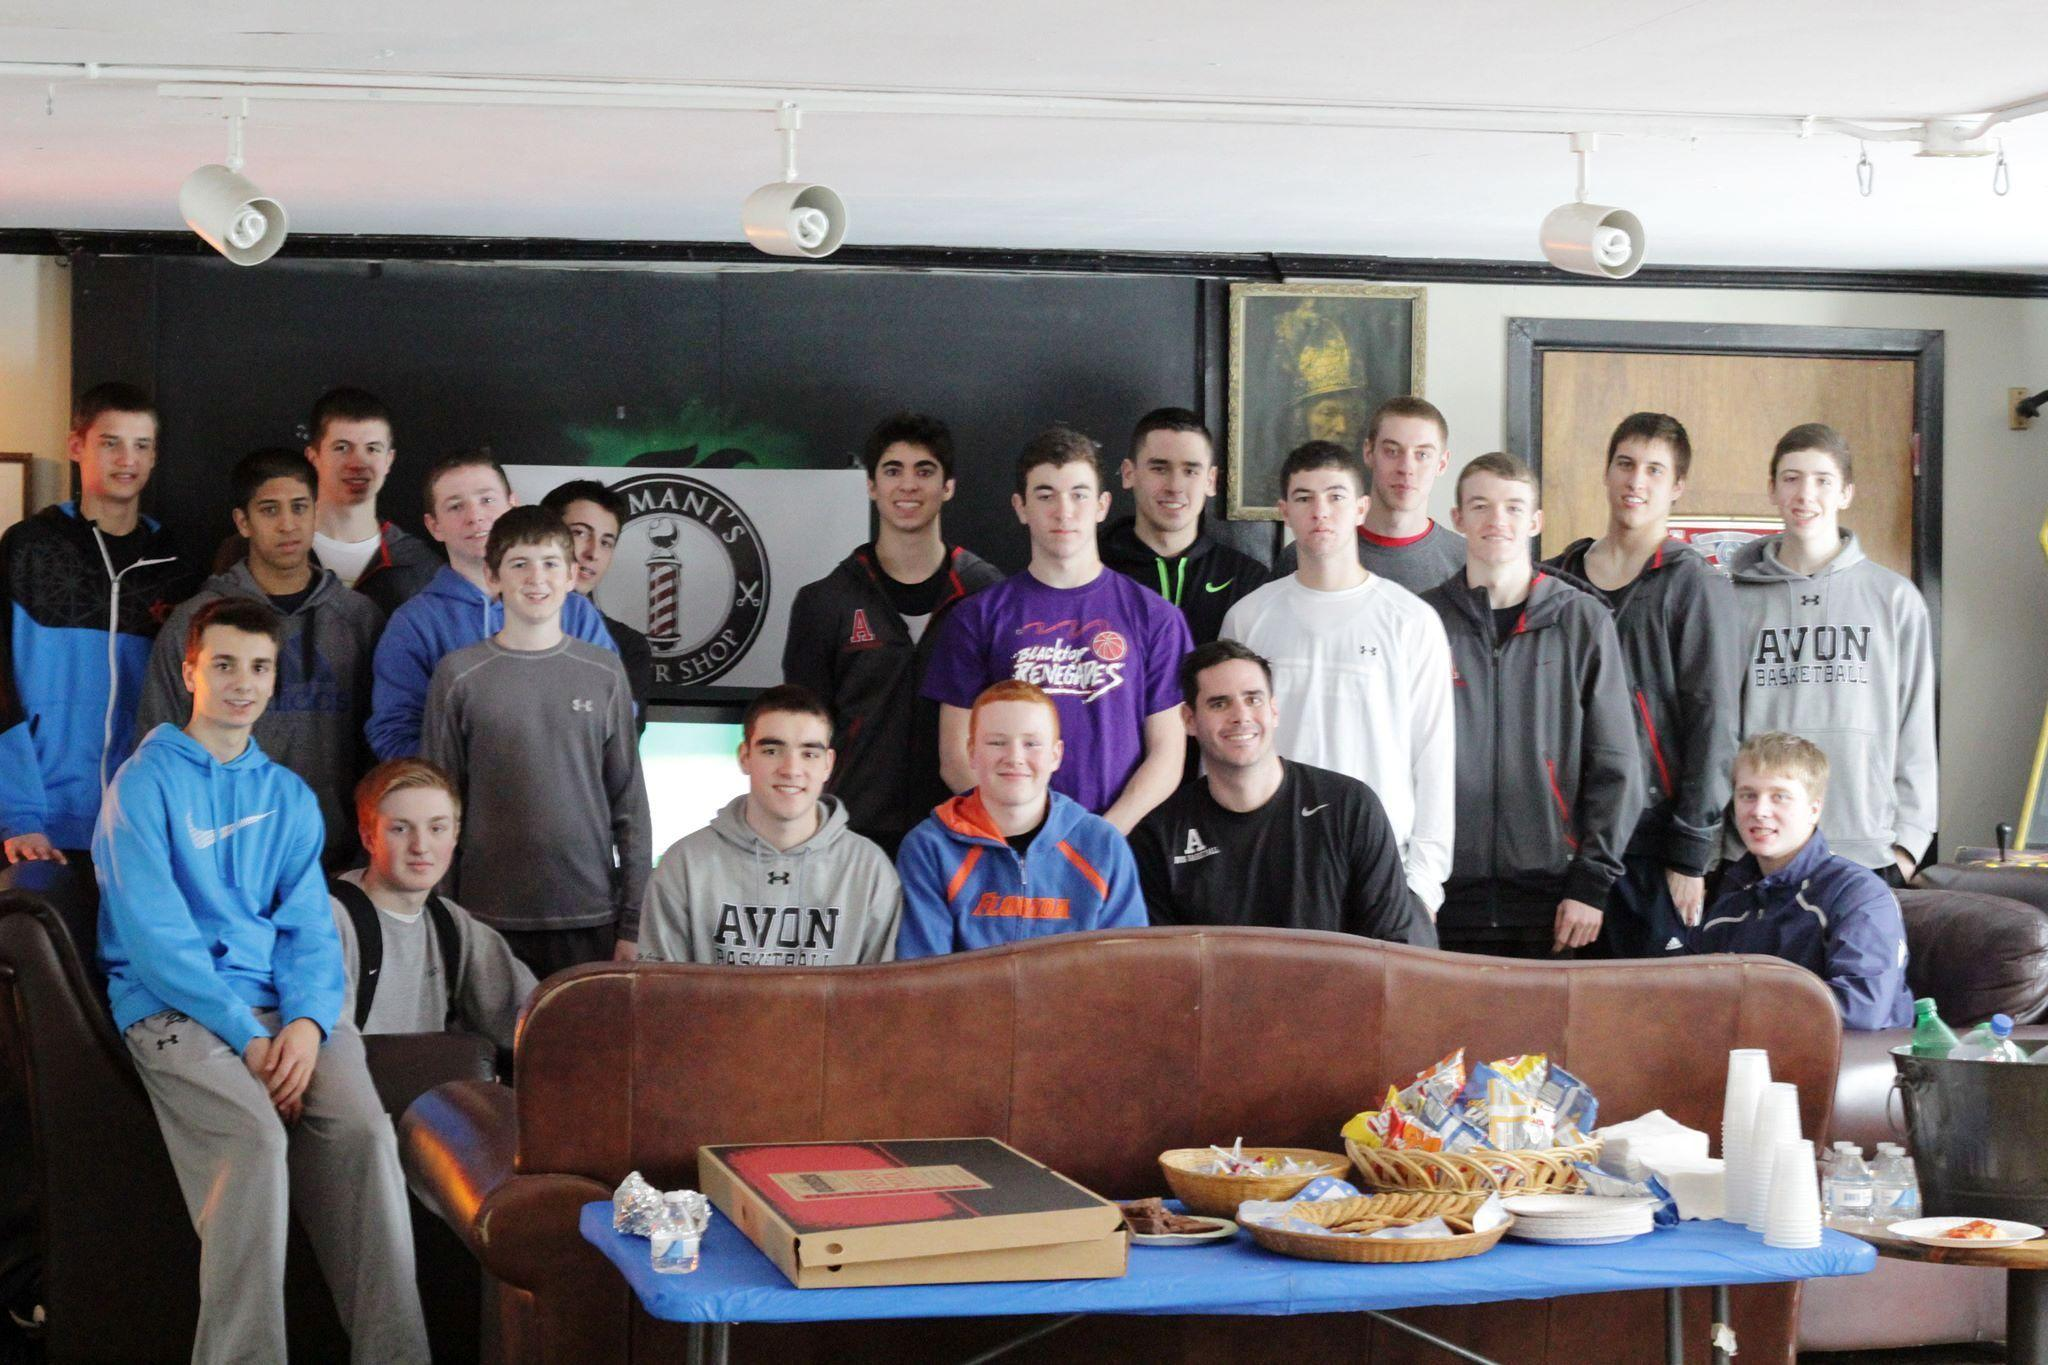 Avon Boys Basketball players team up with Lumani's Barber Shop in Avon to raise funds for Gifts of Love.